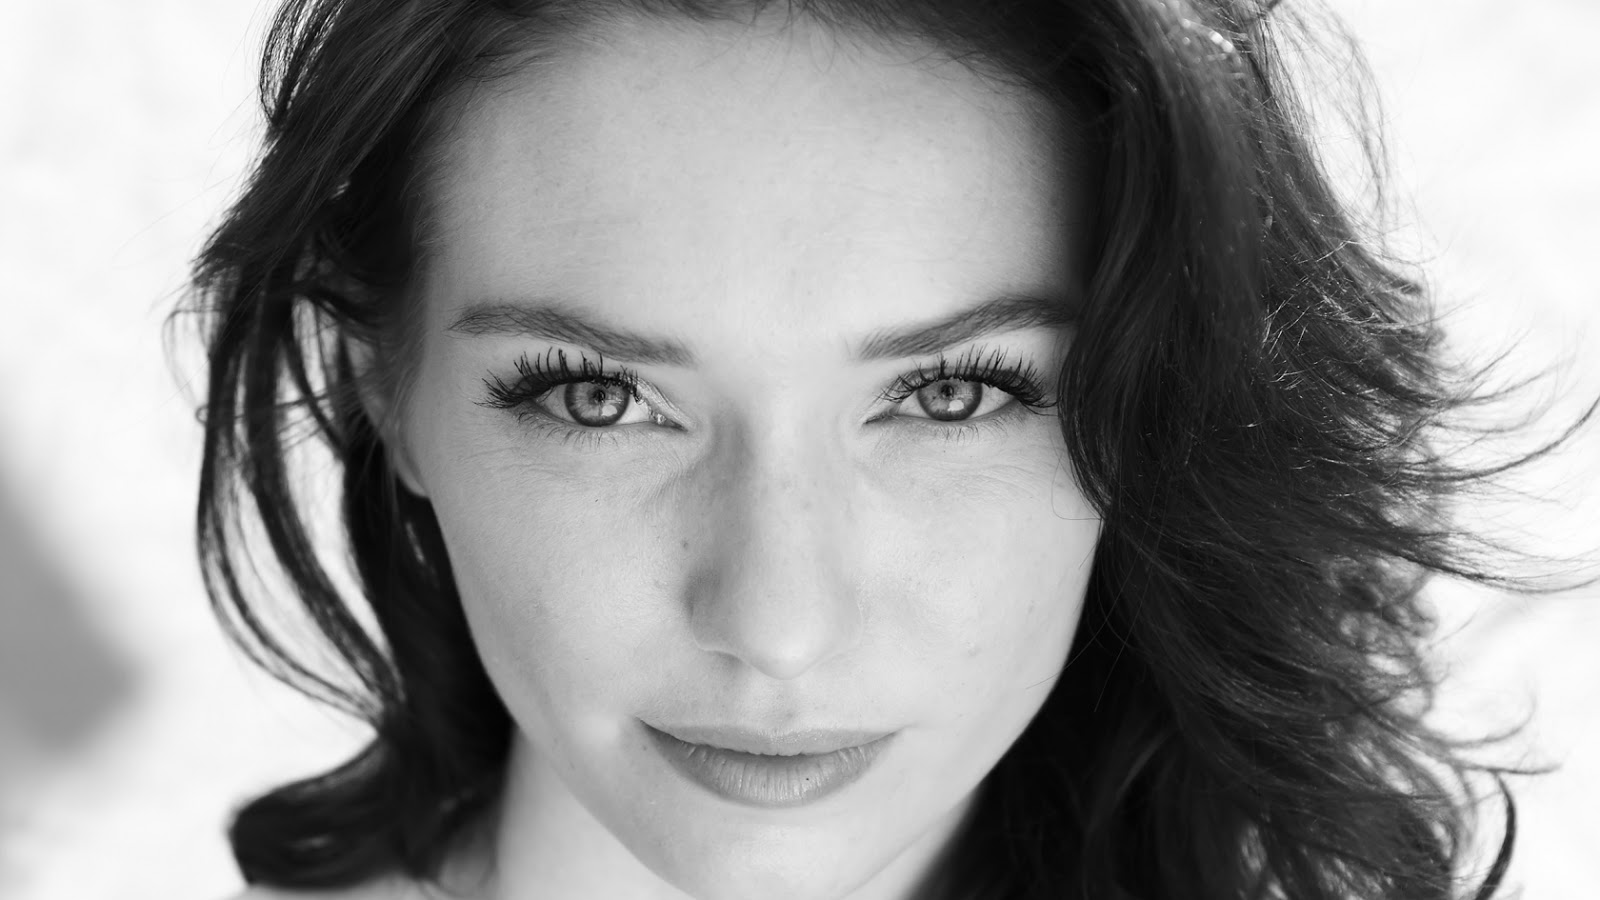 Poldark - Eleanor Tomlinson Cast Opposite Aiden Turner - Press Release